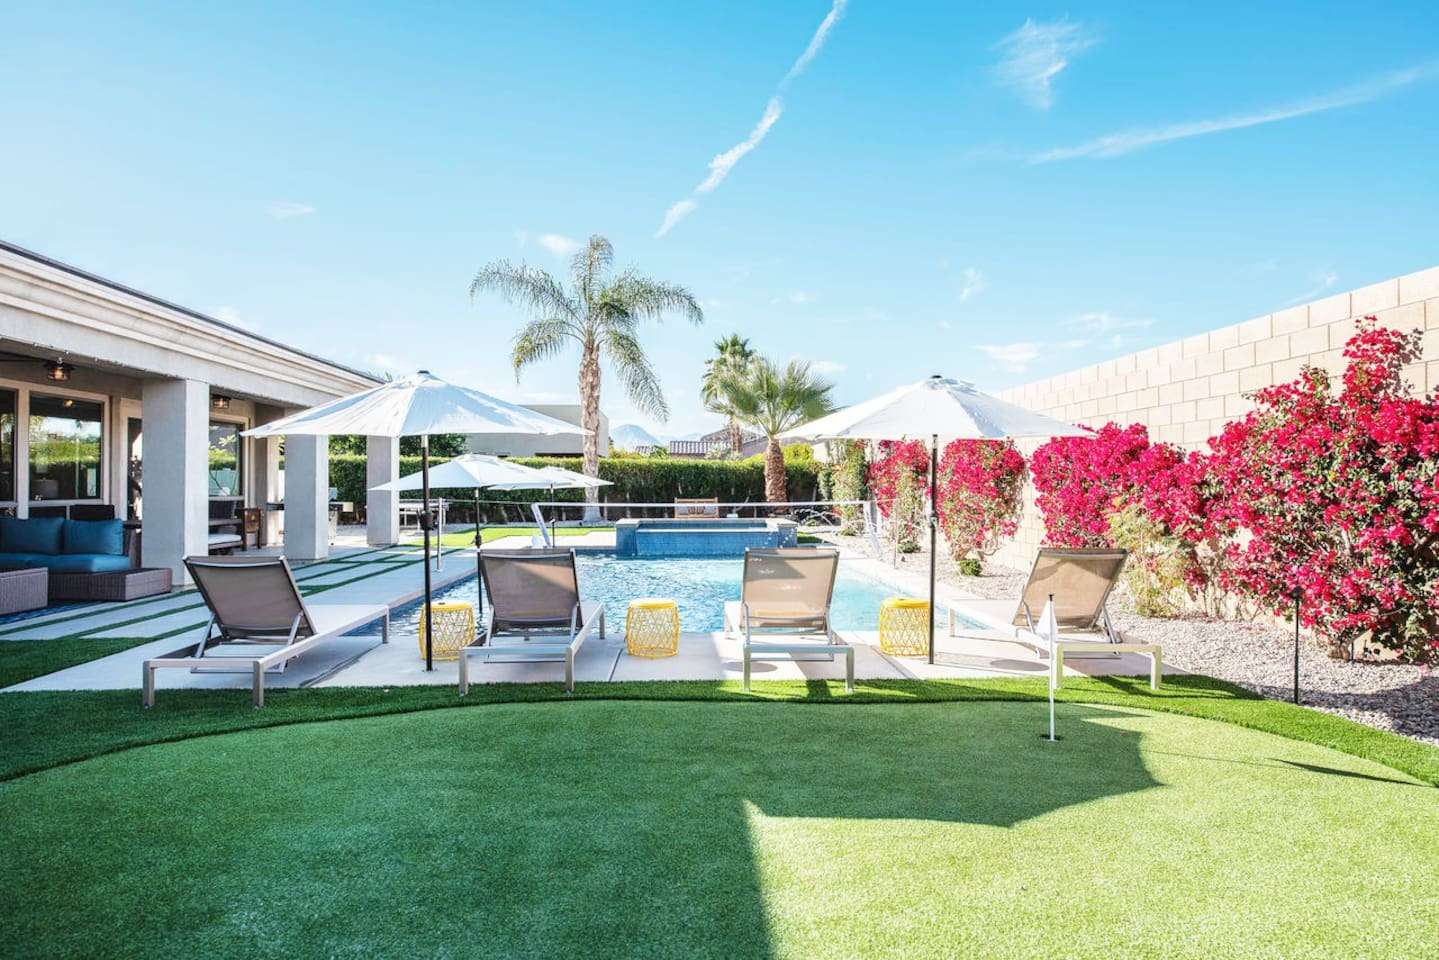 Enjoy a sunny day by the pool .  Lounge in the sun, play volleyball, relax  in the XL Spa or  work on your short game on the putting green!